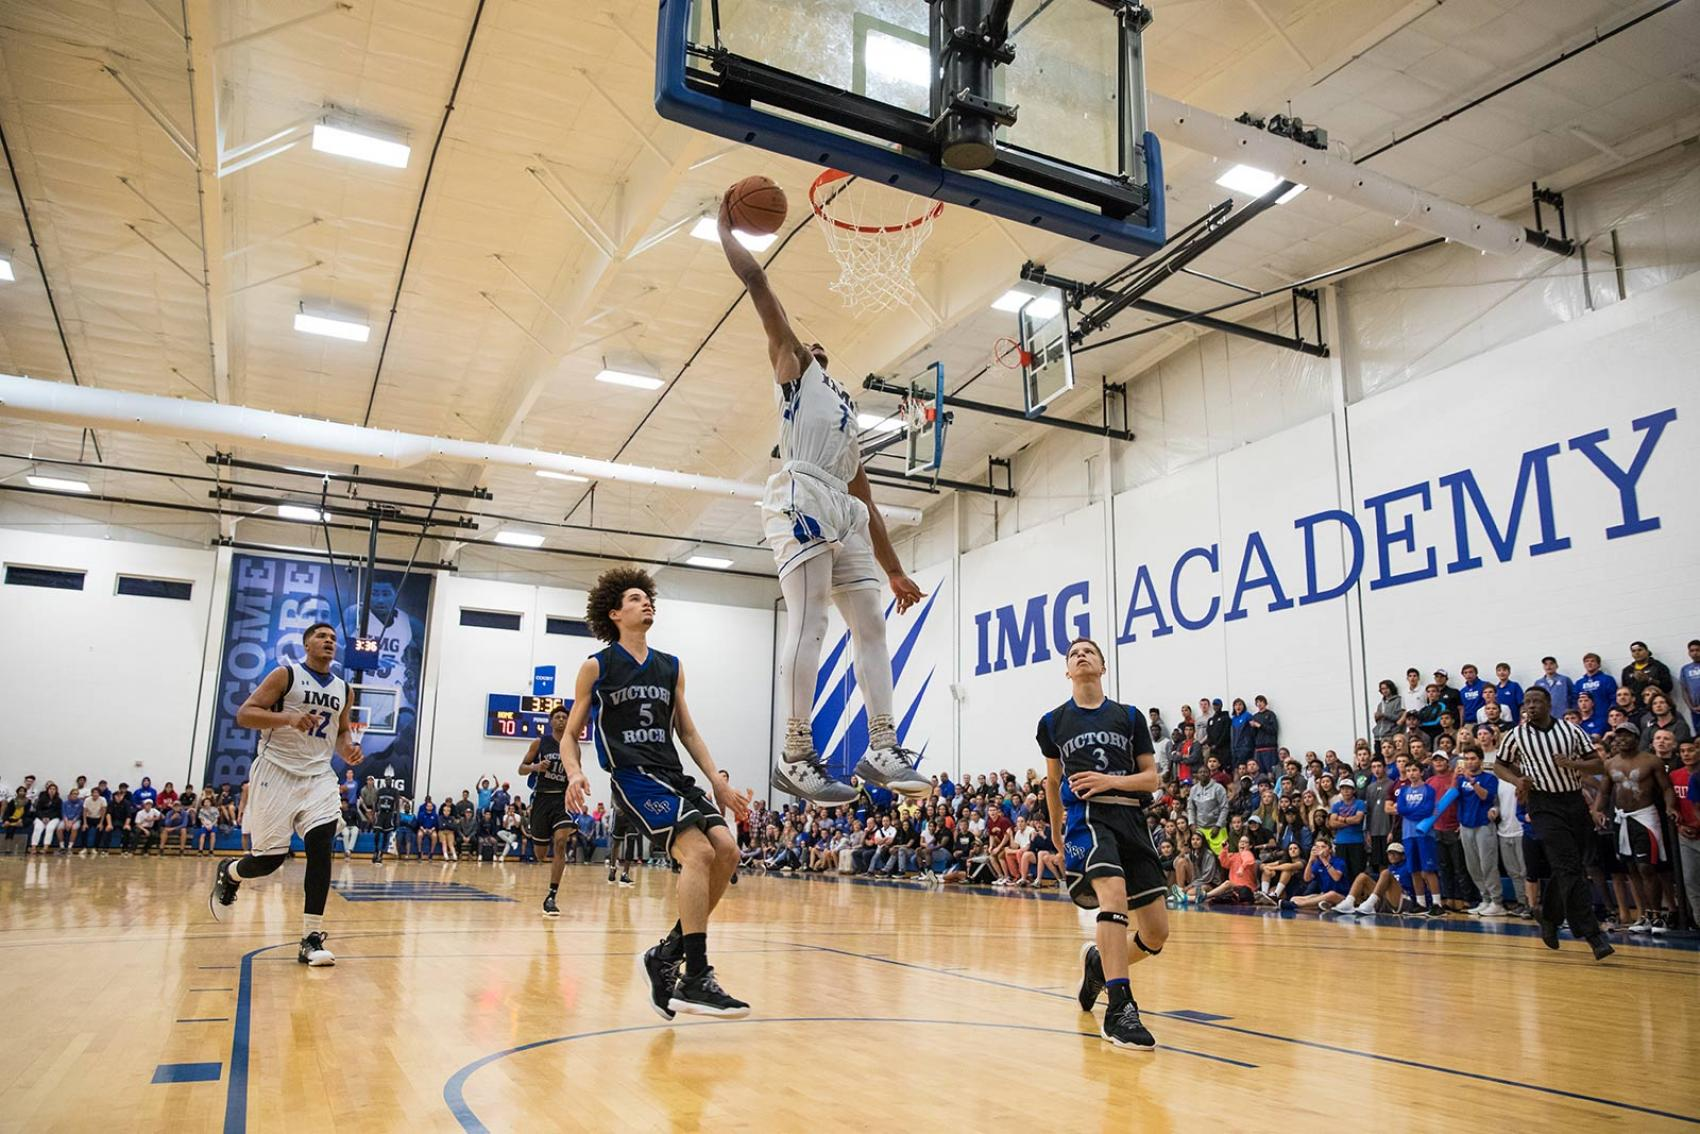 Img: Basketball Academy - Basketball Program